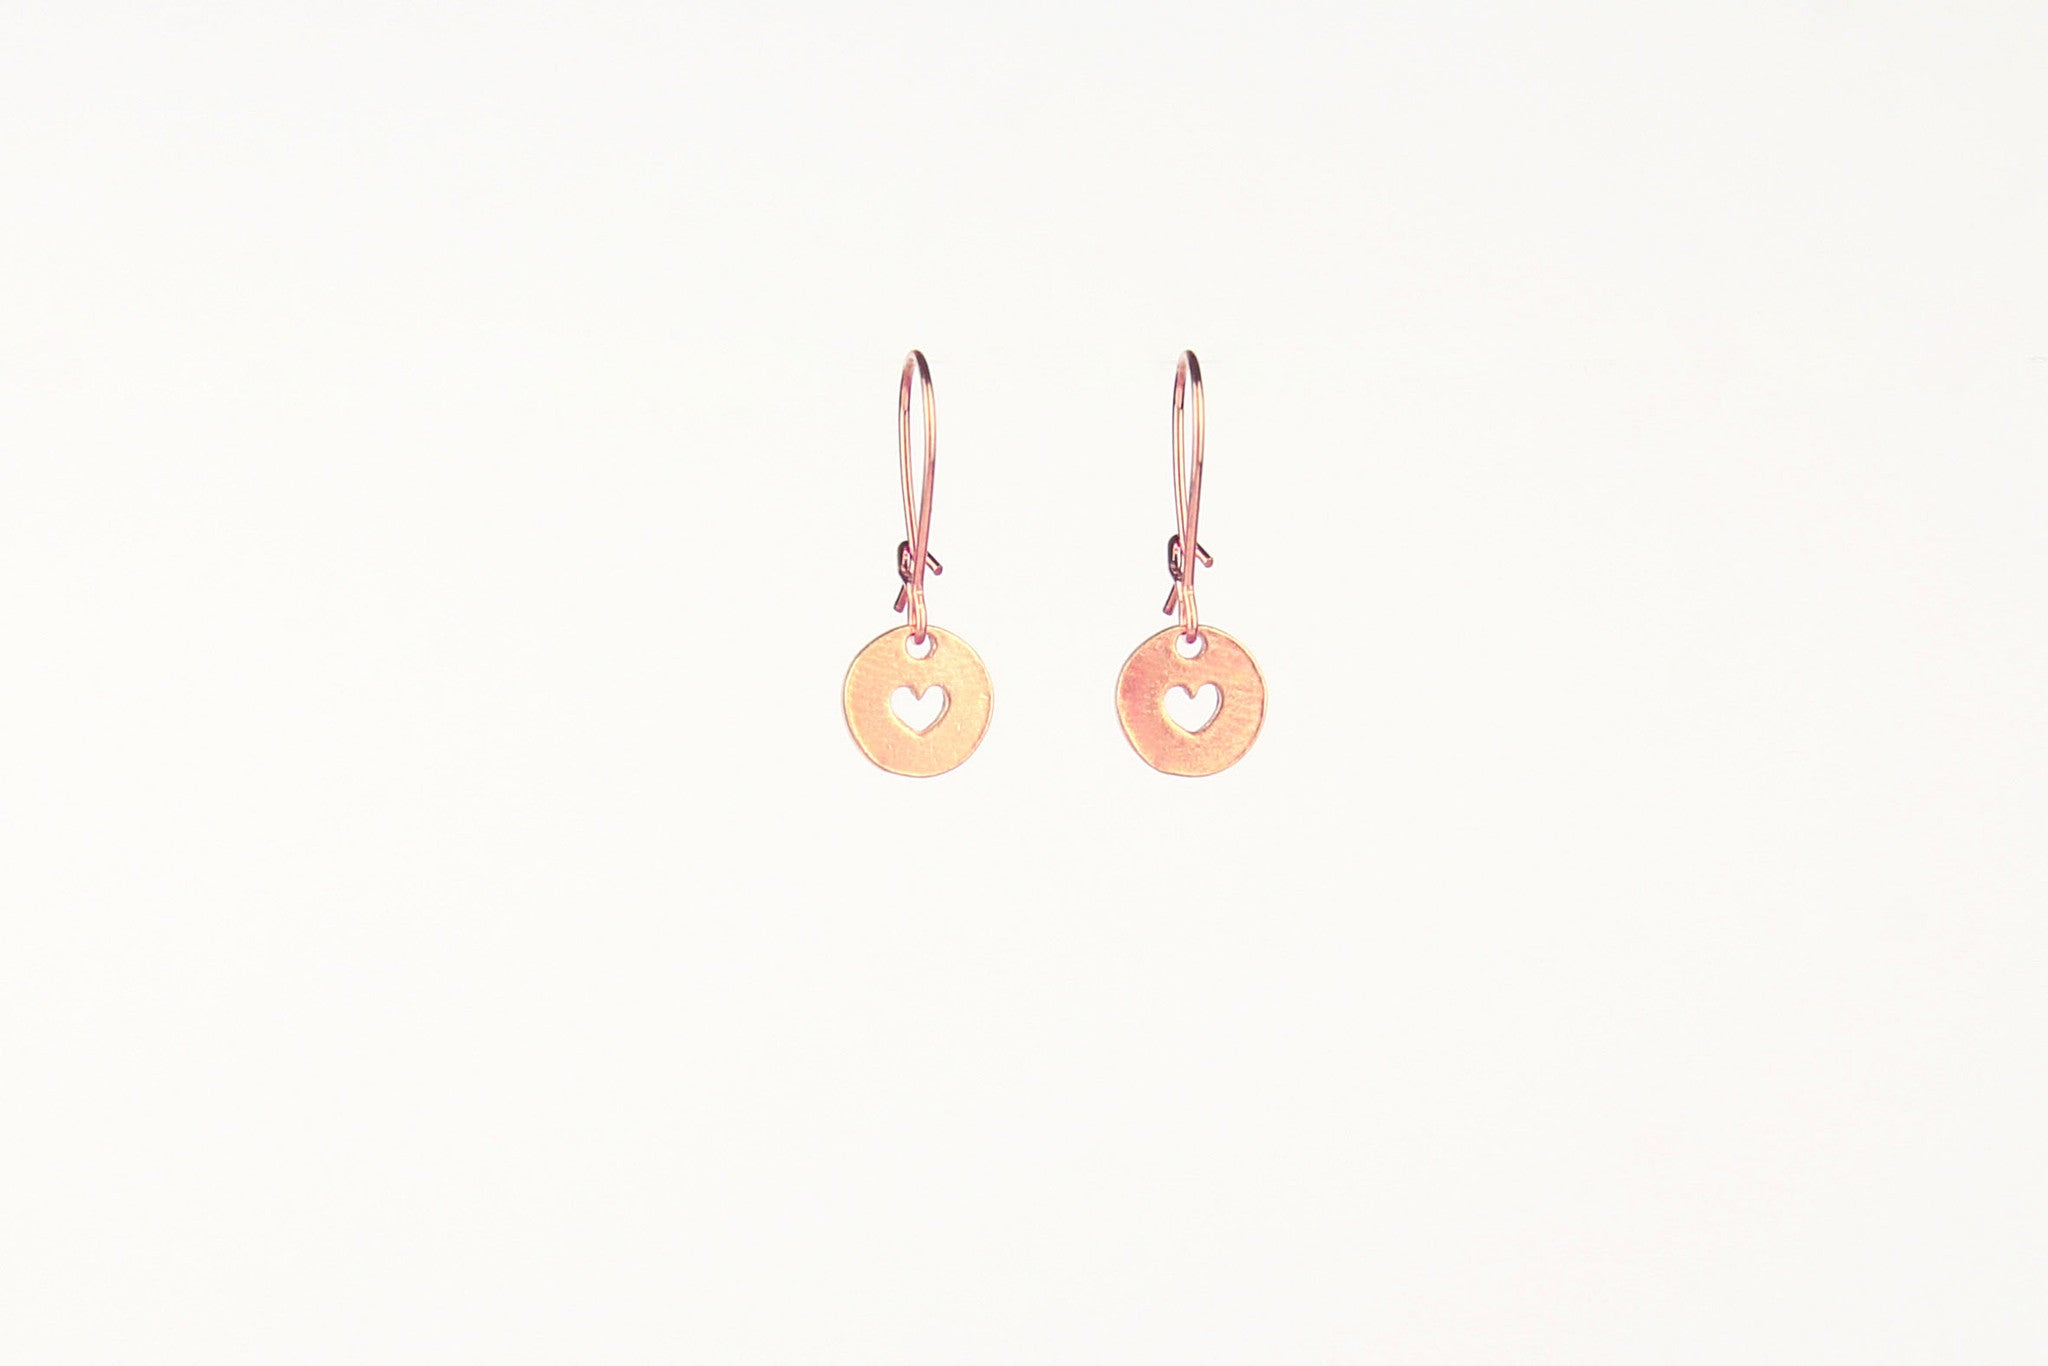 jewelberry ohrringe earrings love token rose gold plated sterling silver fine jewelry handmade with love fairtrade